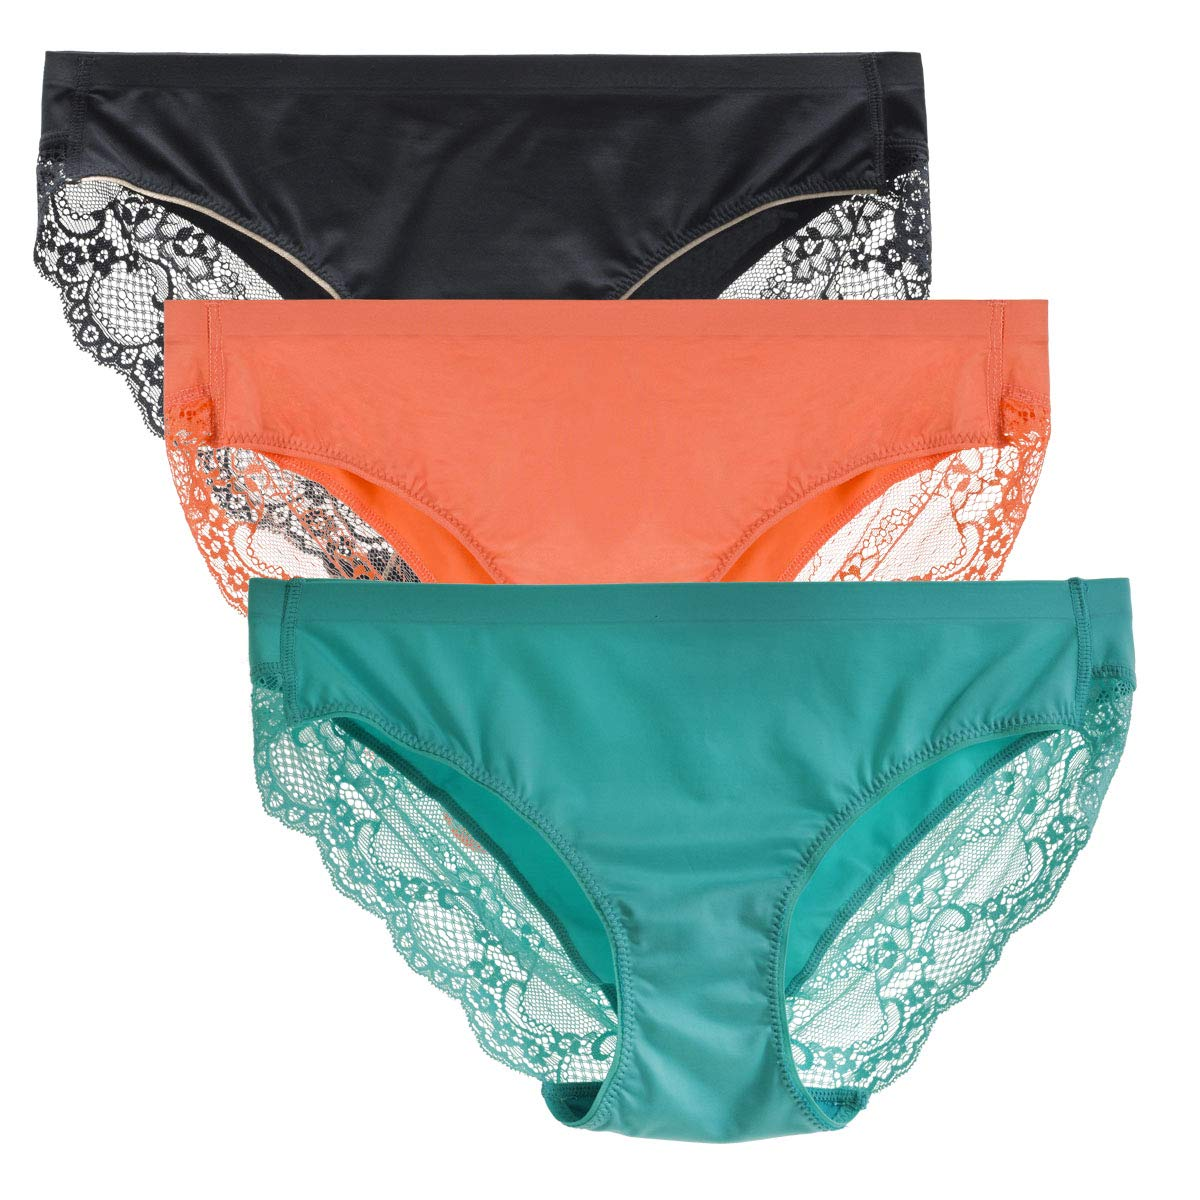 LIQQY Women's 3 Pack Comfortable No Ride up Lace Trim Bikini Panty Underwear (Medium, Black/Blue/Orange)